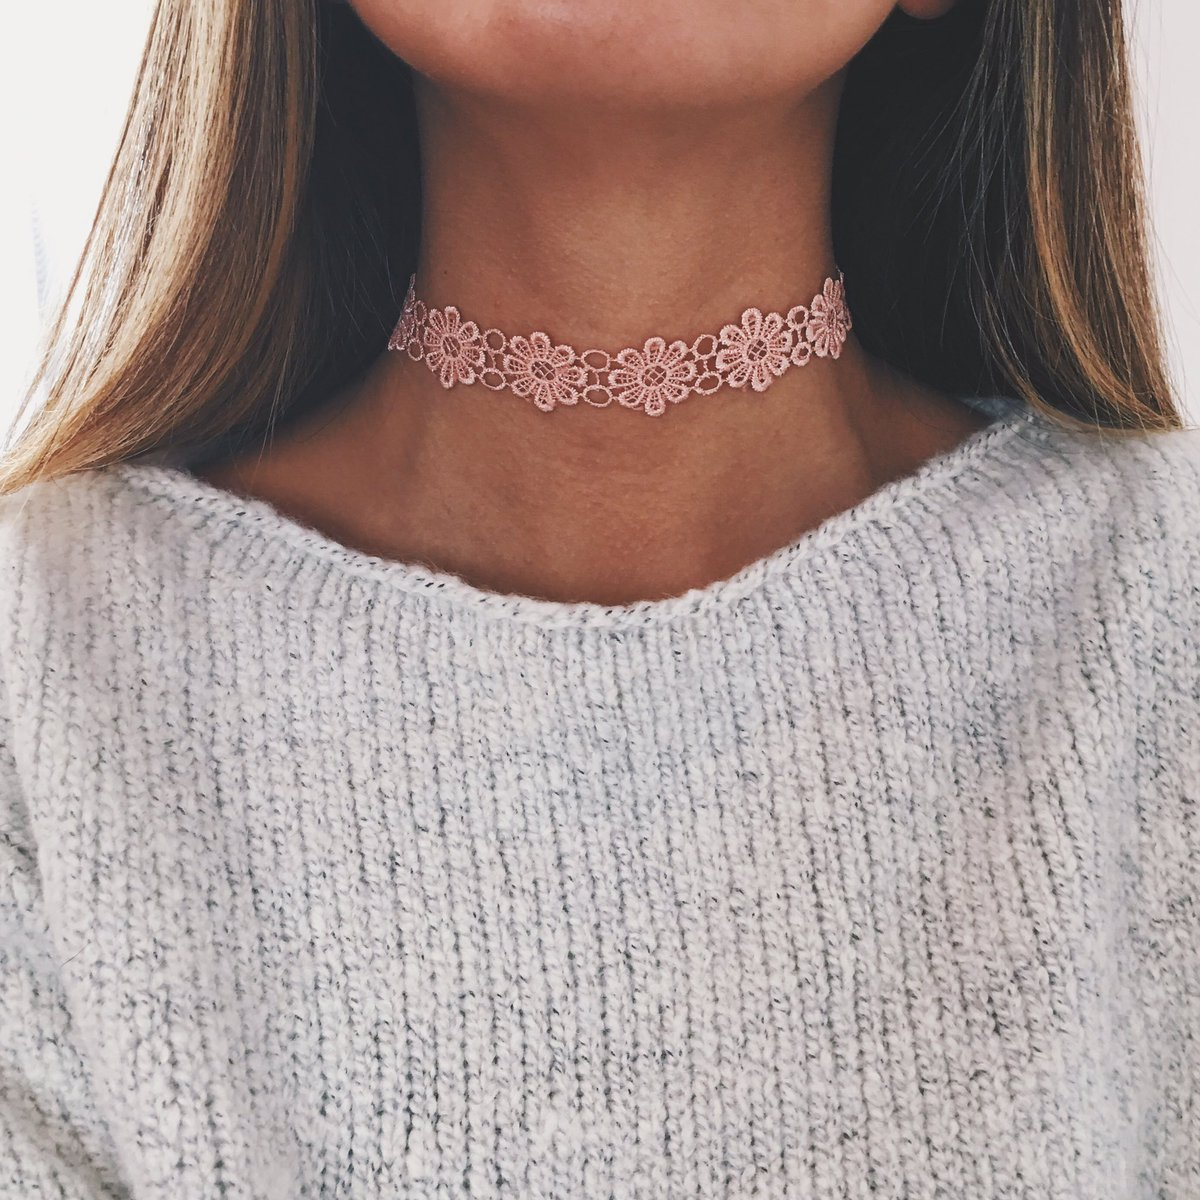 flowerbomb choker ����   https://t.co/6KvUjCNV6N ⭐️ by #artfulIy via @c0nvey https://t.co/Uc2lYBZuHw